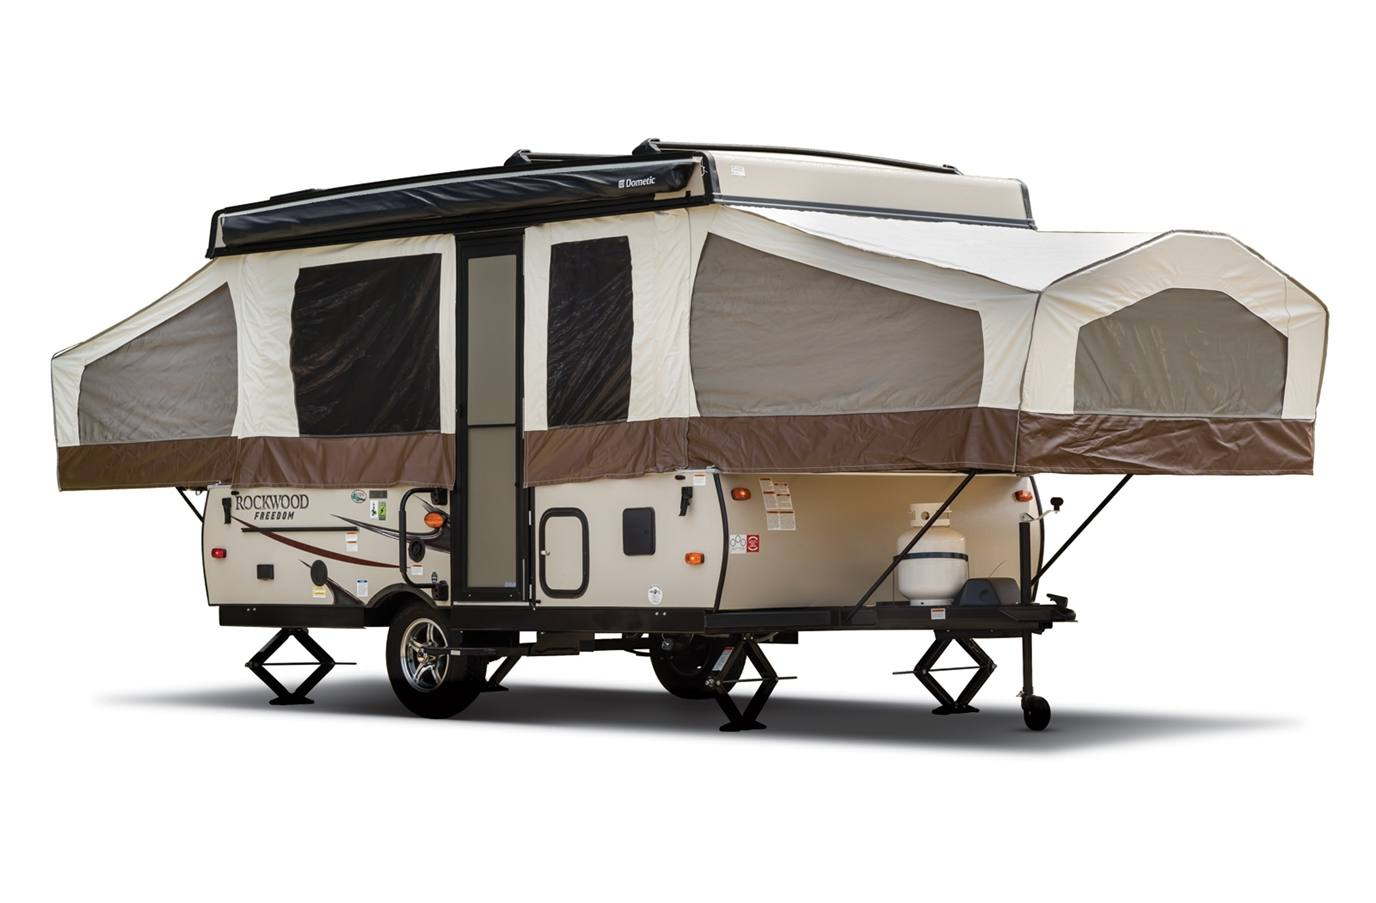 2018 Rockwood by Forest River HW277 High Wall Series for